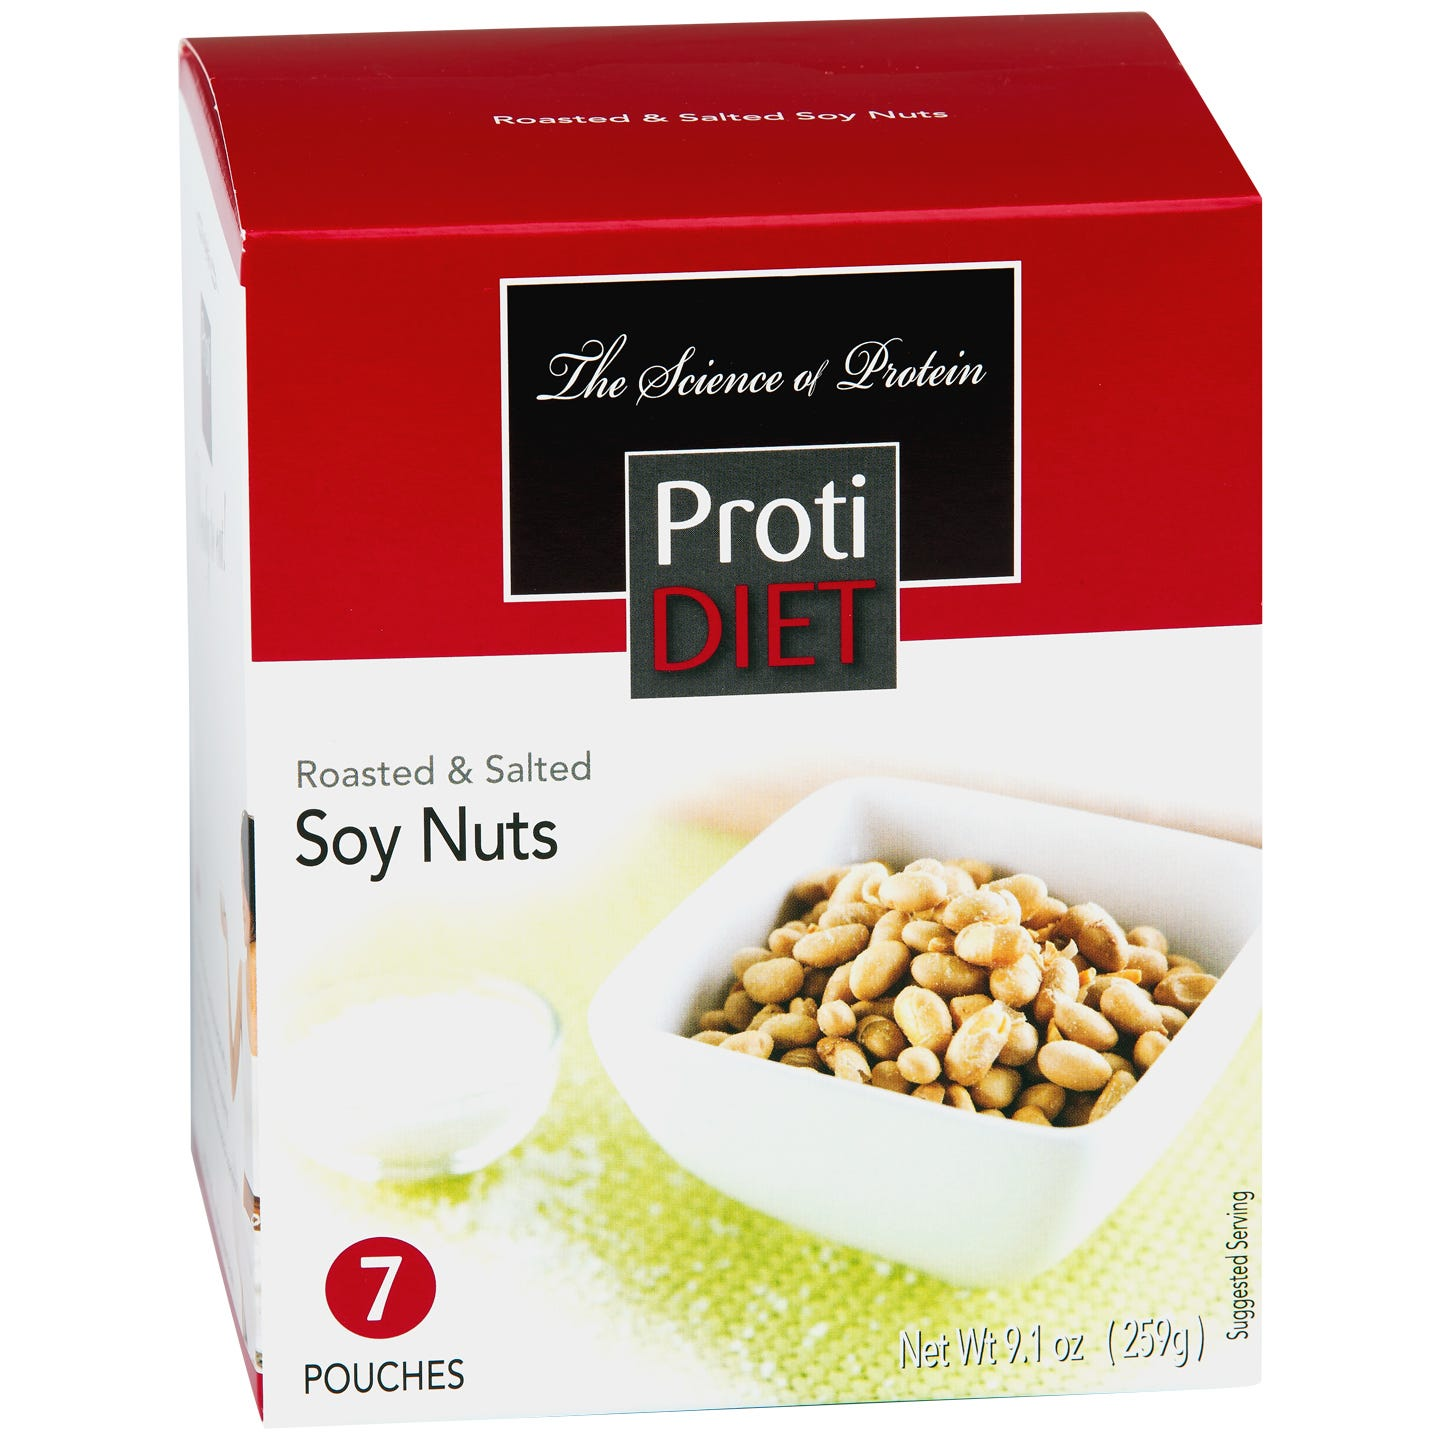 Roasted & Salted Soy Nuts Original (7 ct) - ProtiDiet - Rapid Diet Weight Loss Products Shop